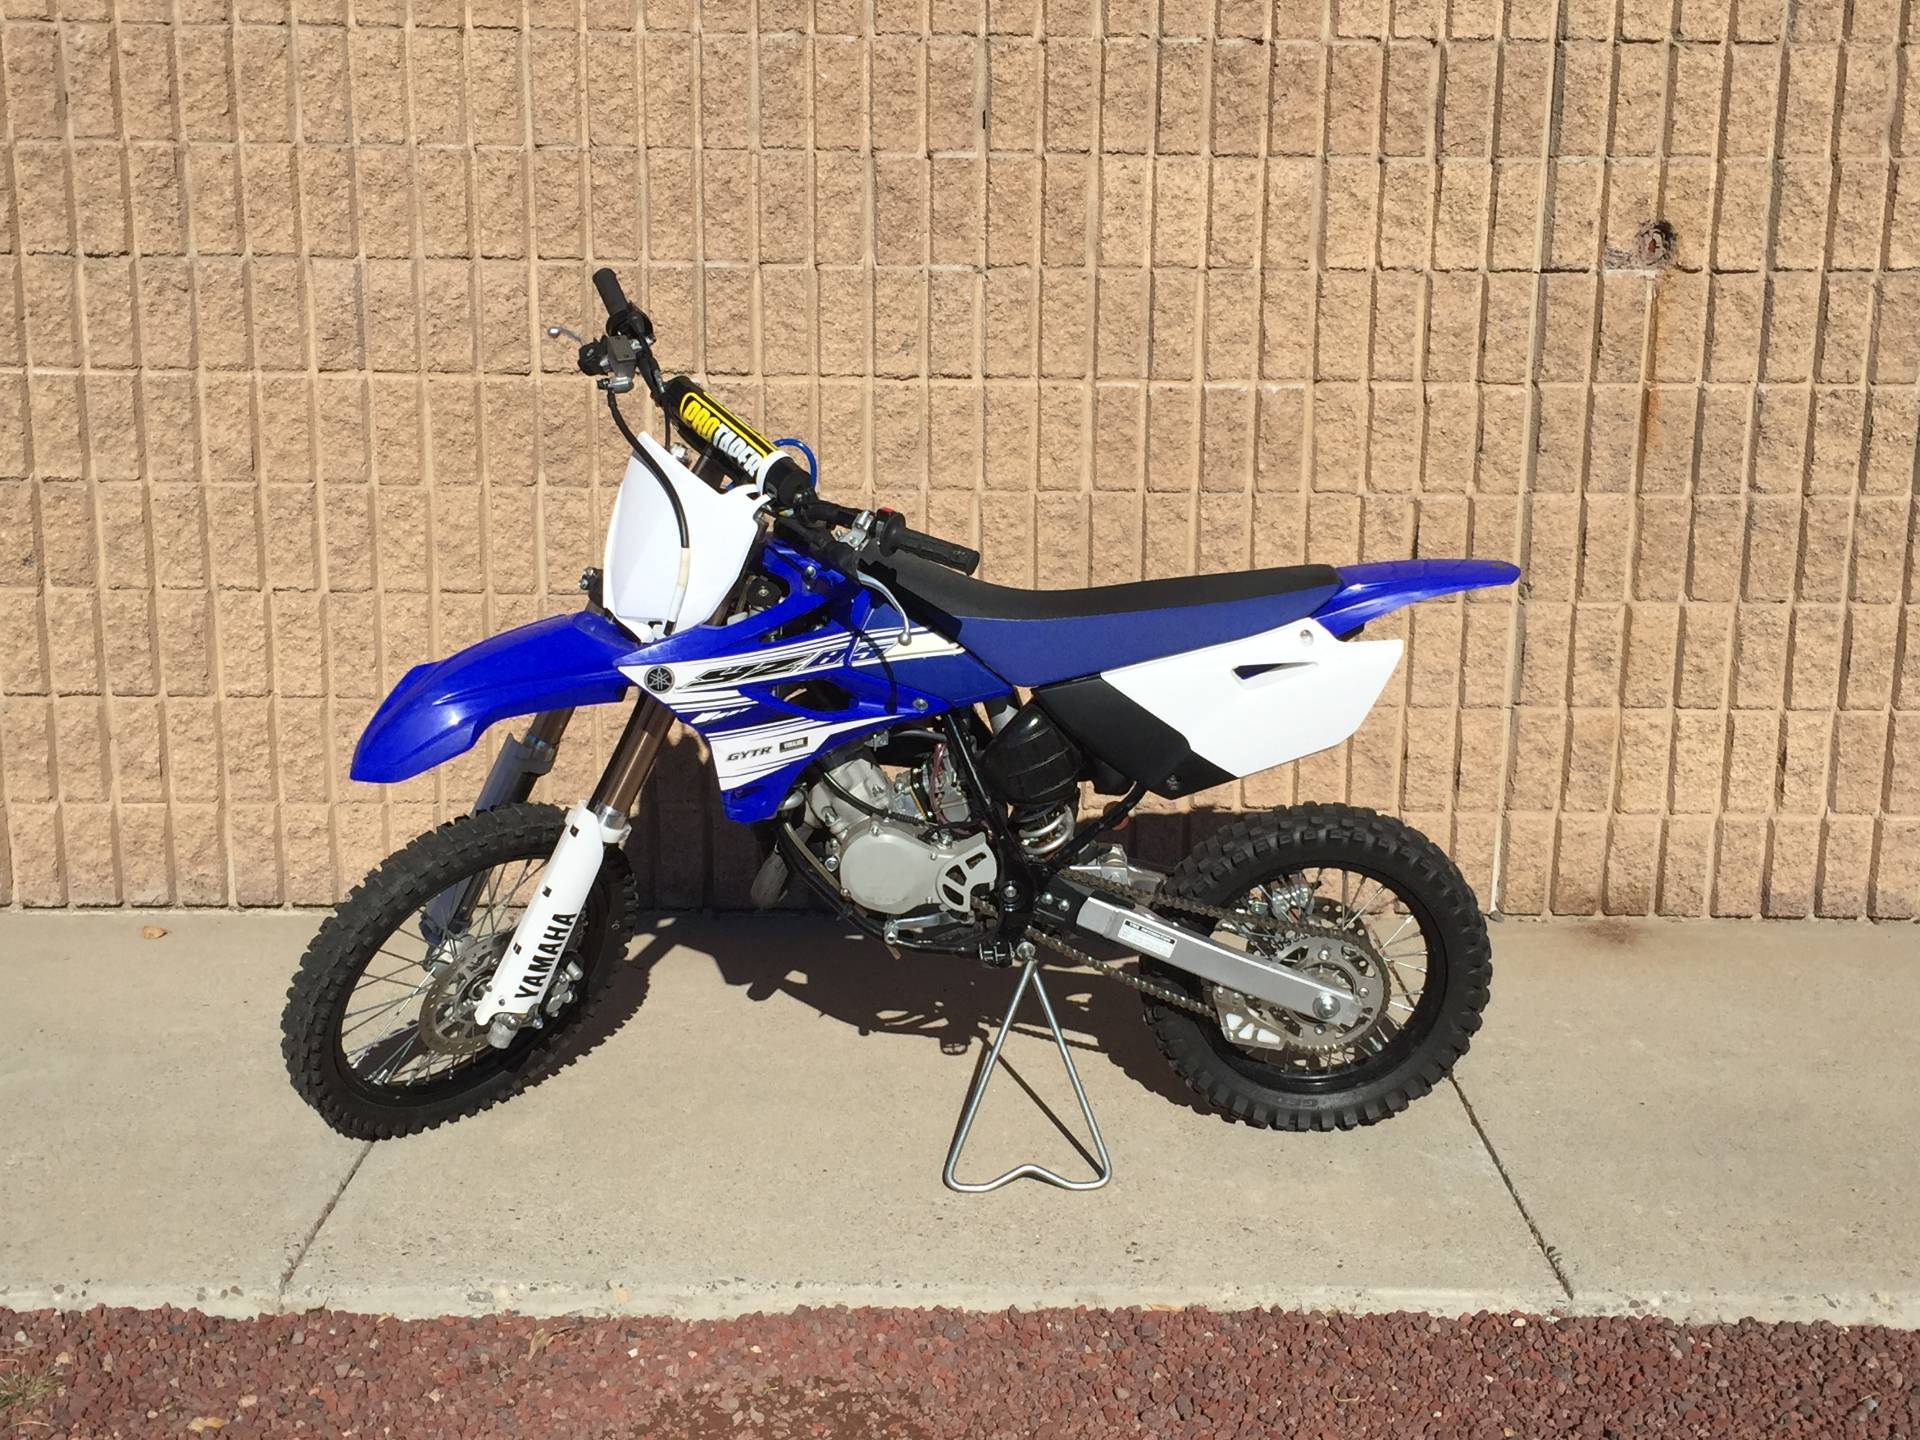 Used 2016 Yamaha YZ85 Motorcycles in Albuquerque, NM